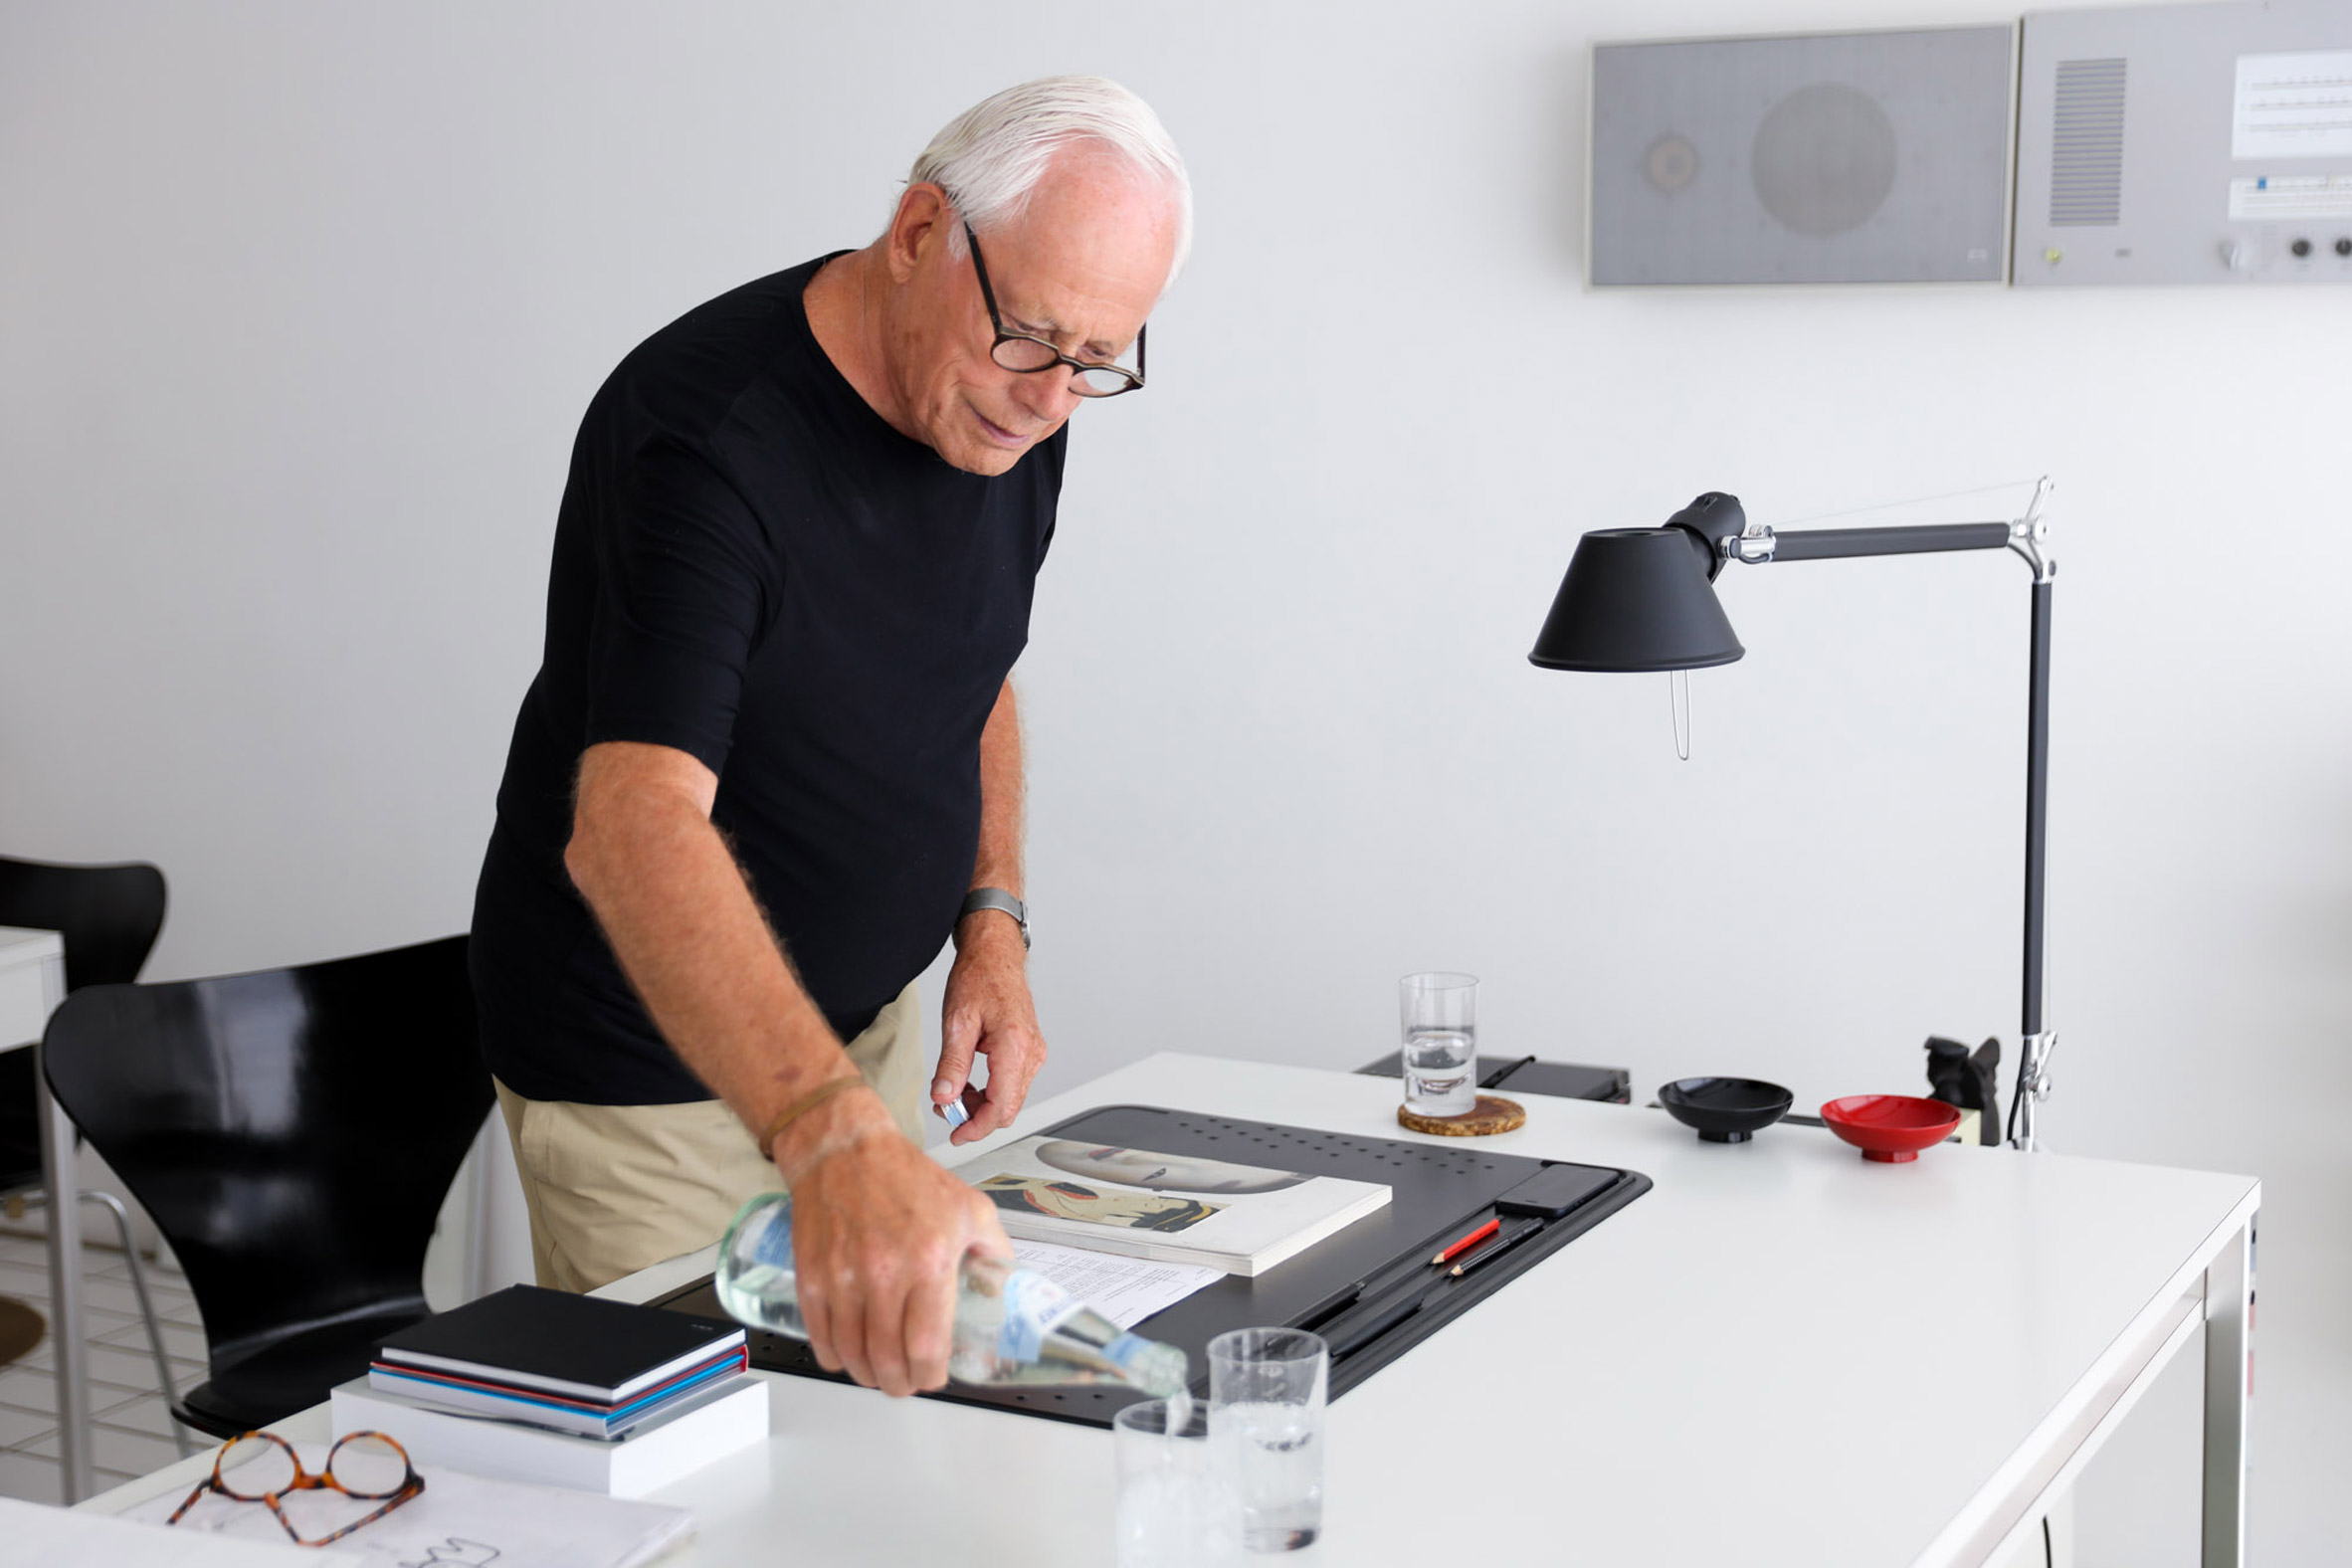 Dieter Rams - image source: https://www.dezeen.com/